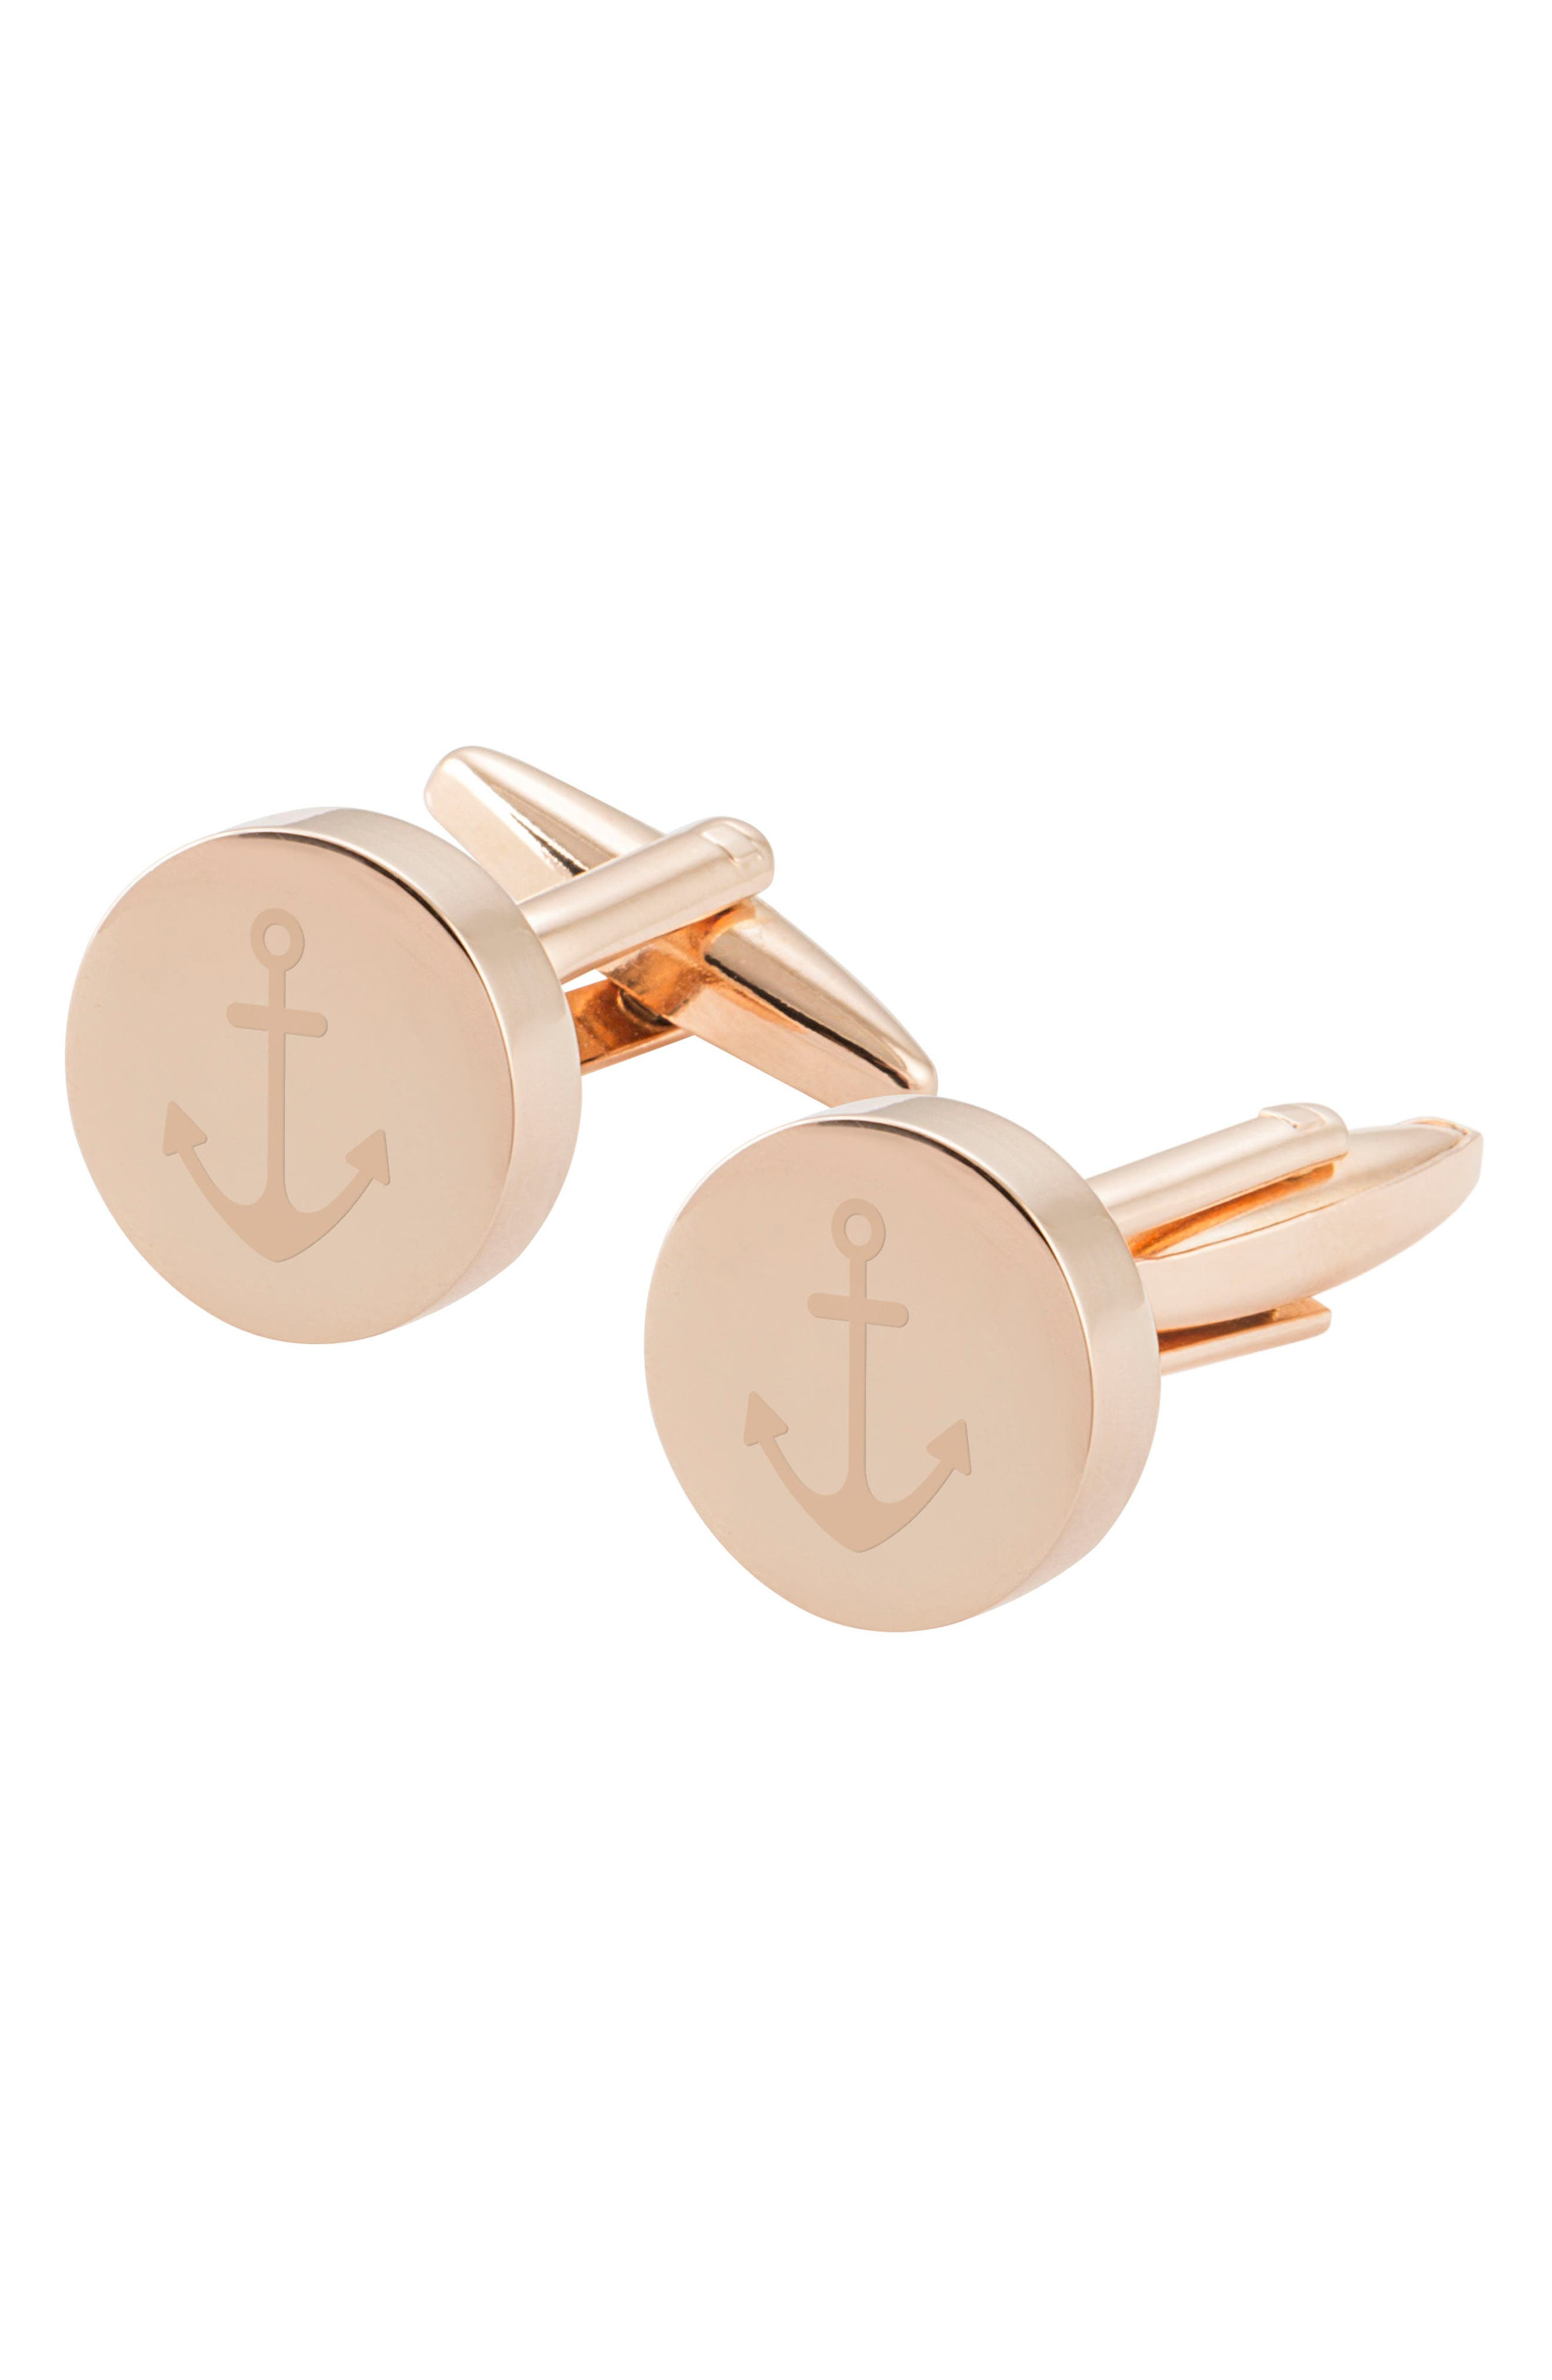 Anchor Cuff Links,                             Main thumbnail 1, color,                             Rose Gold